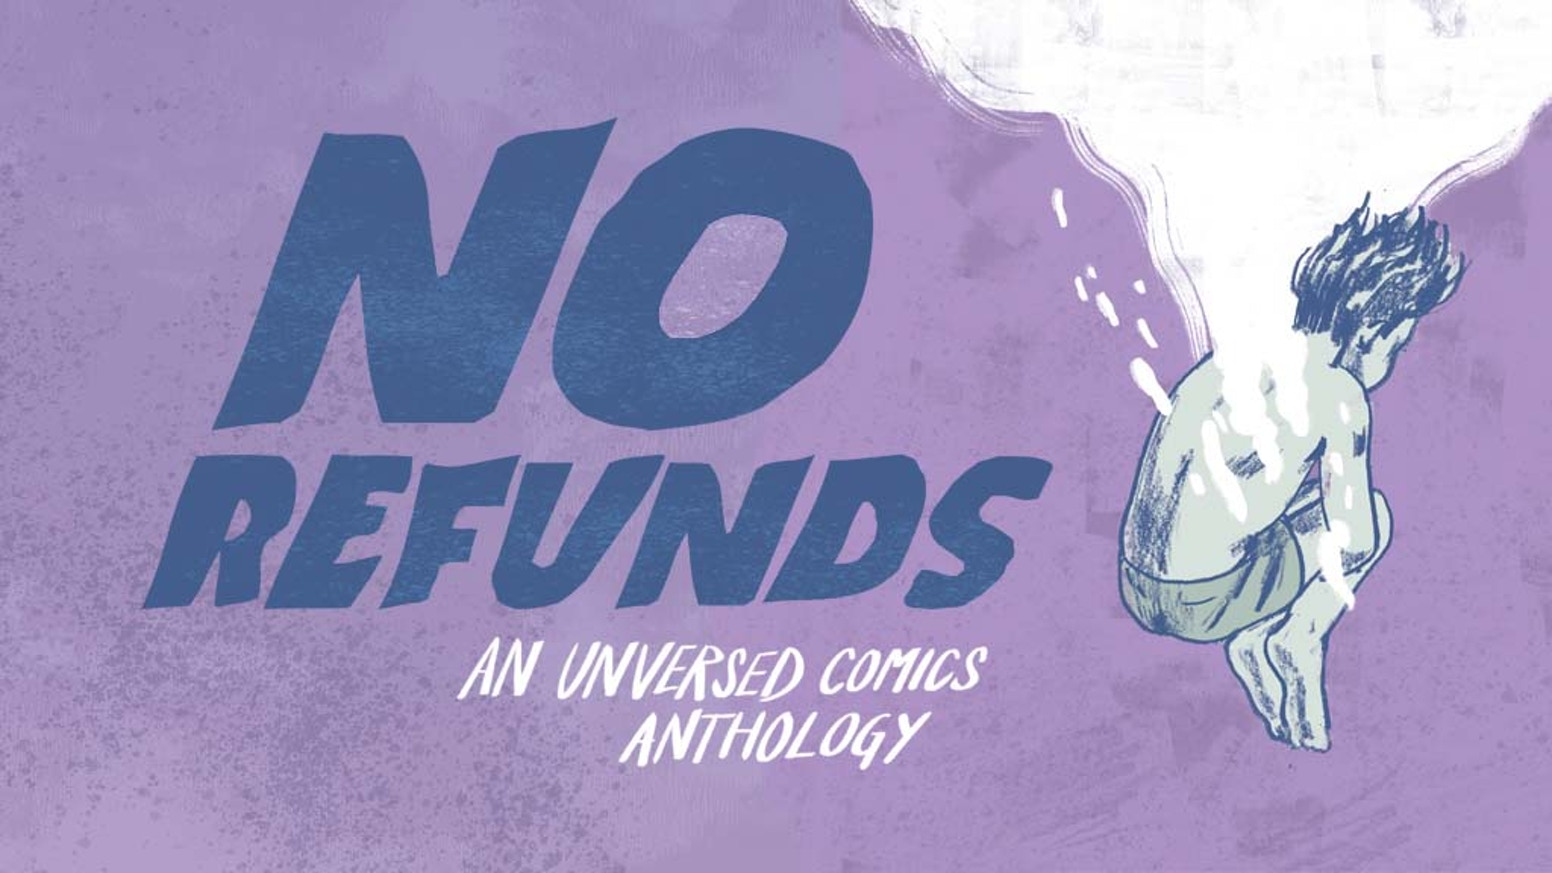 No Refunds is the 2nd book in the Unversed collection, with stories about times you can never go back. It was successfully funded on May 11, 2018 - Our final installment is in the works for May 2019!